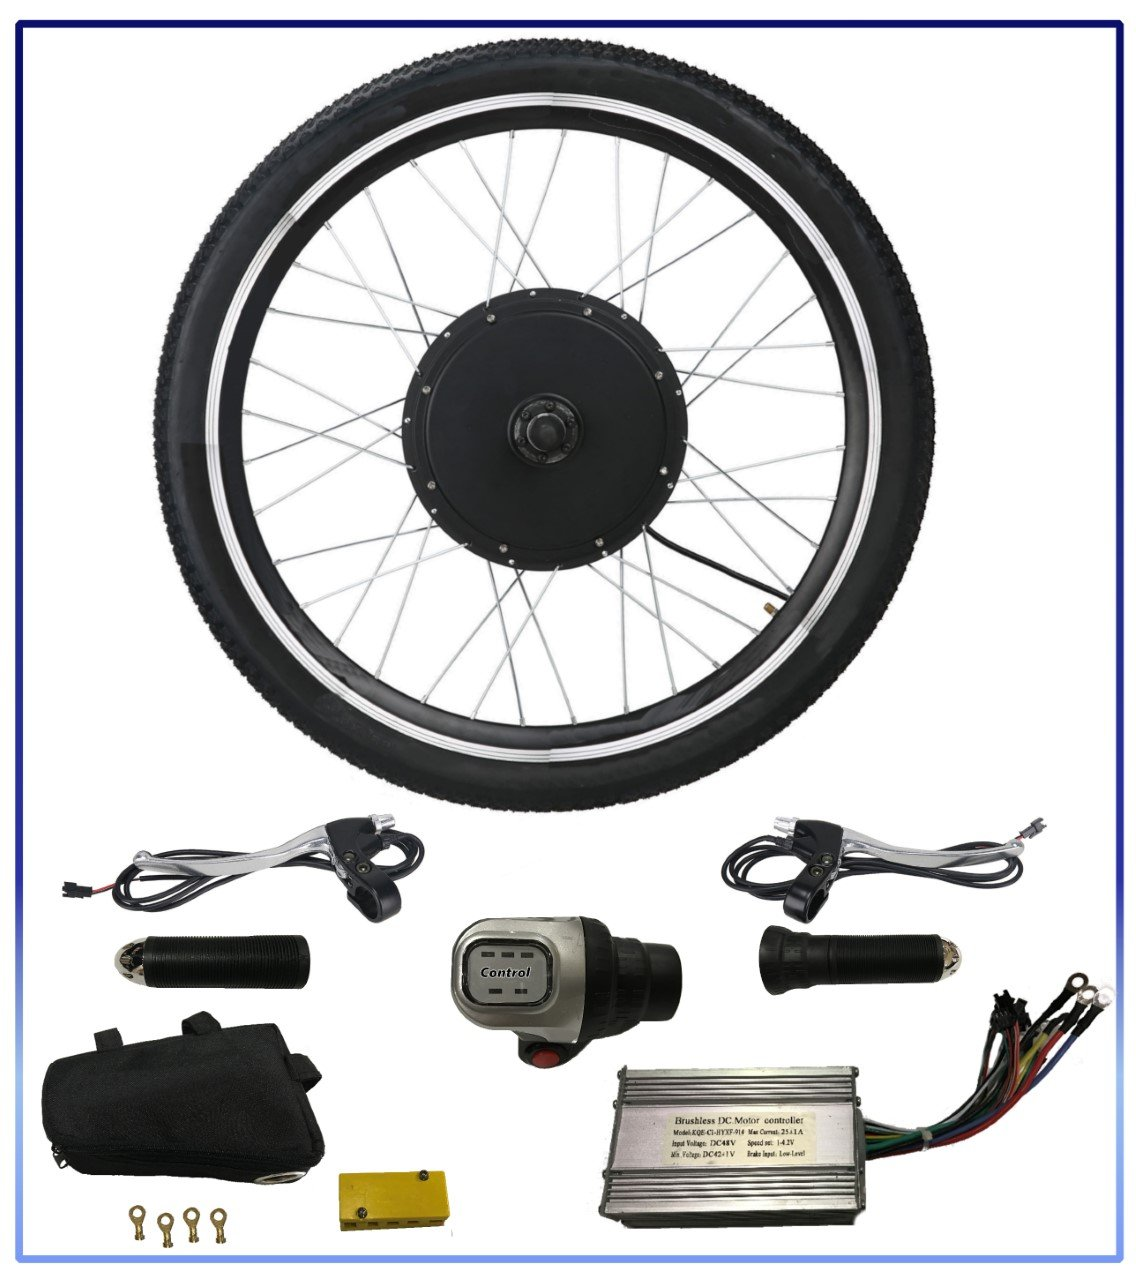 48v 1000w electric bicycle motor conversion kit 26 bike cycling 48v 1000w electric bicycle motor conversion kit 26 bike cycling front wheel hub amazon sports outdoors publicscrutiny Gallery